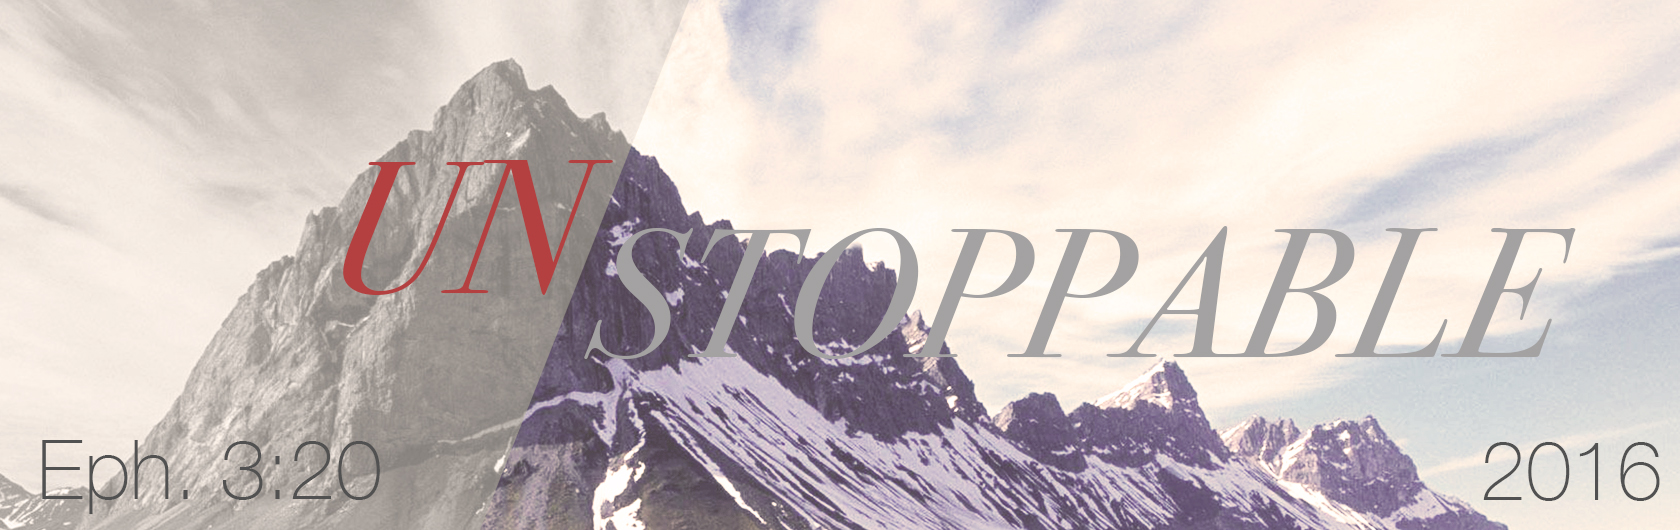 2016-unstoppable-web-banner